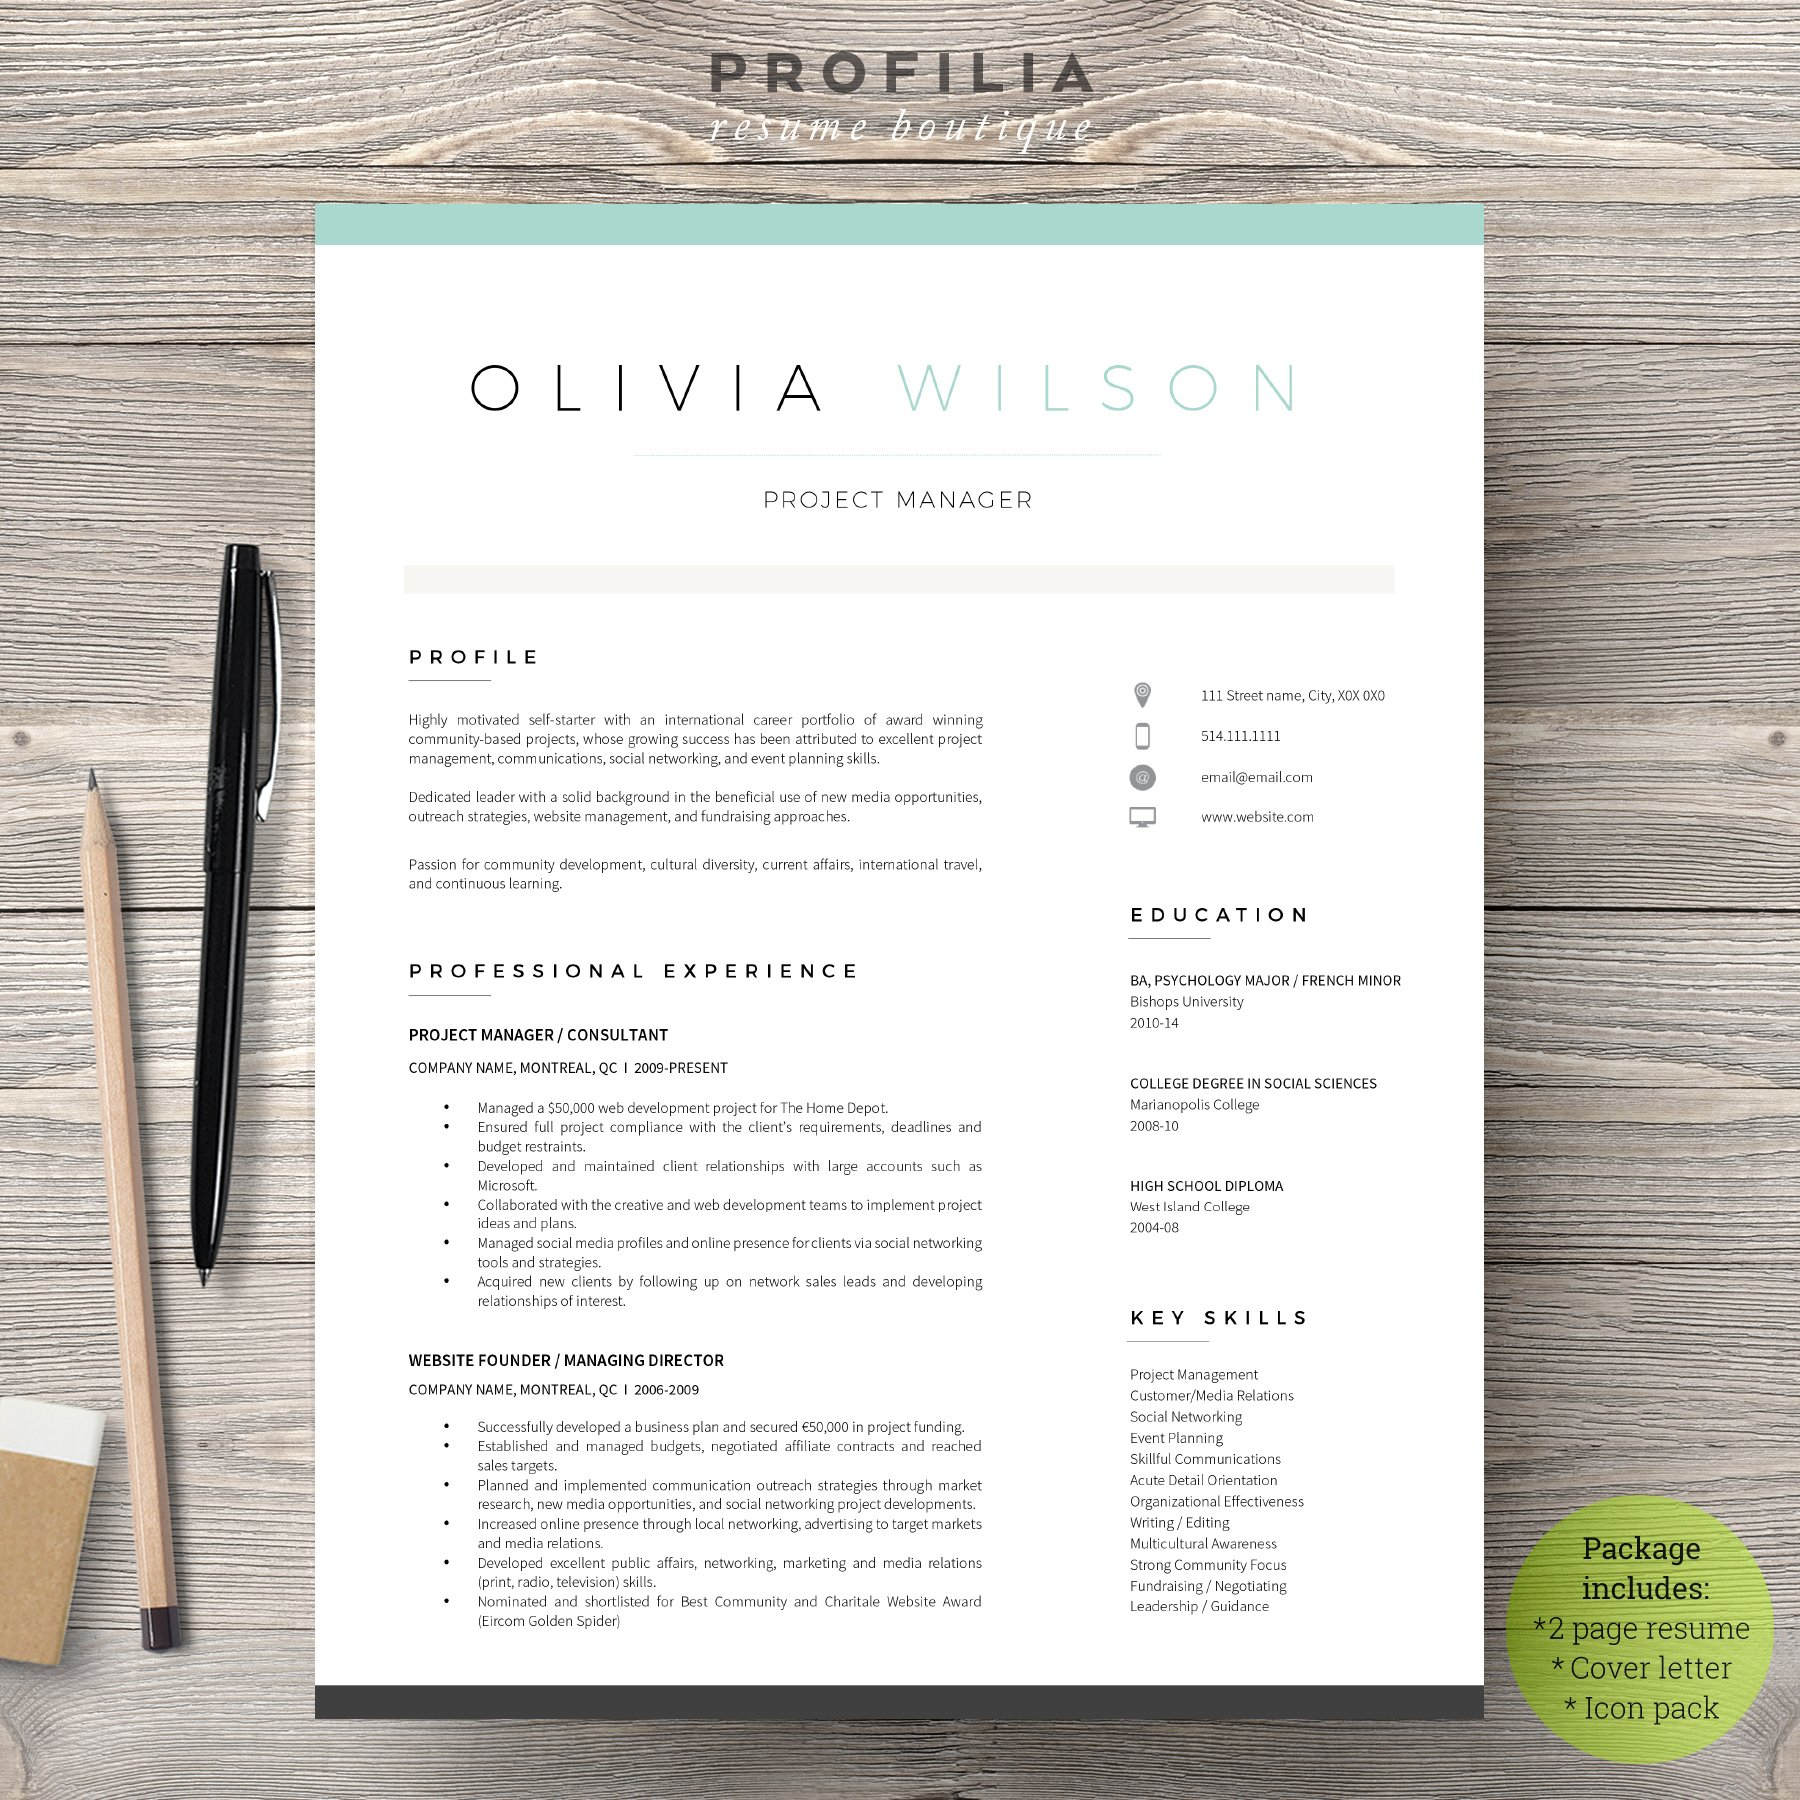 word resume cover letter template resume templates creative market - Microsoft Cover Letter Templates For Resume